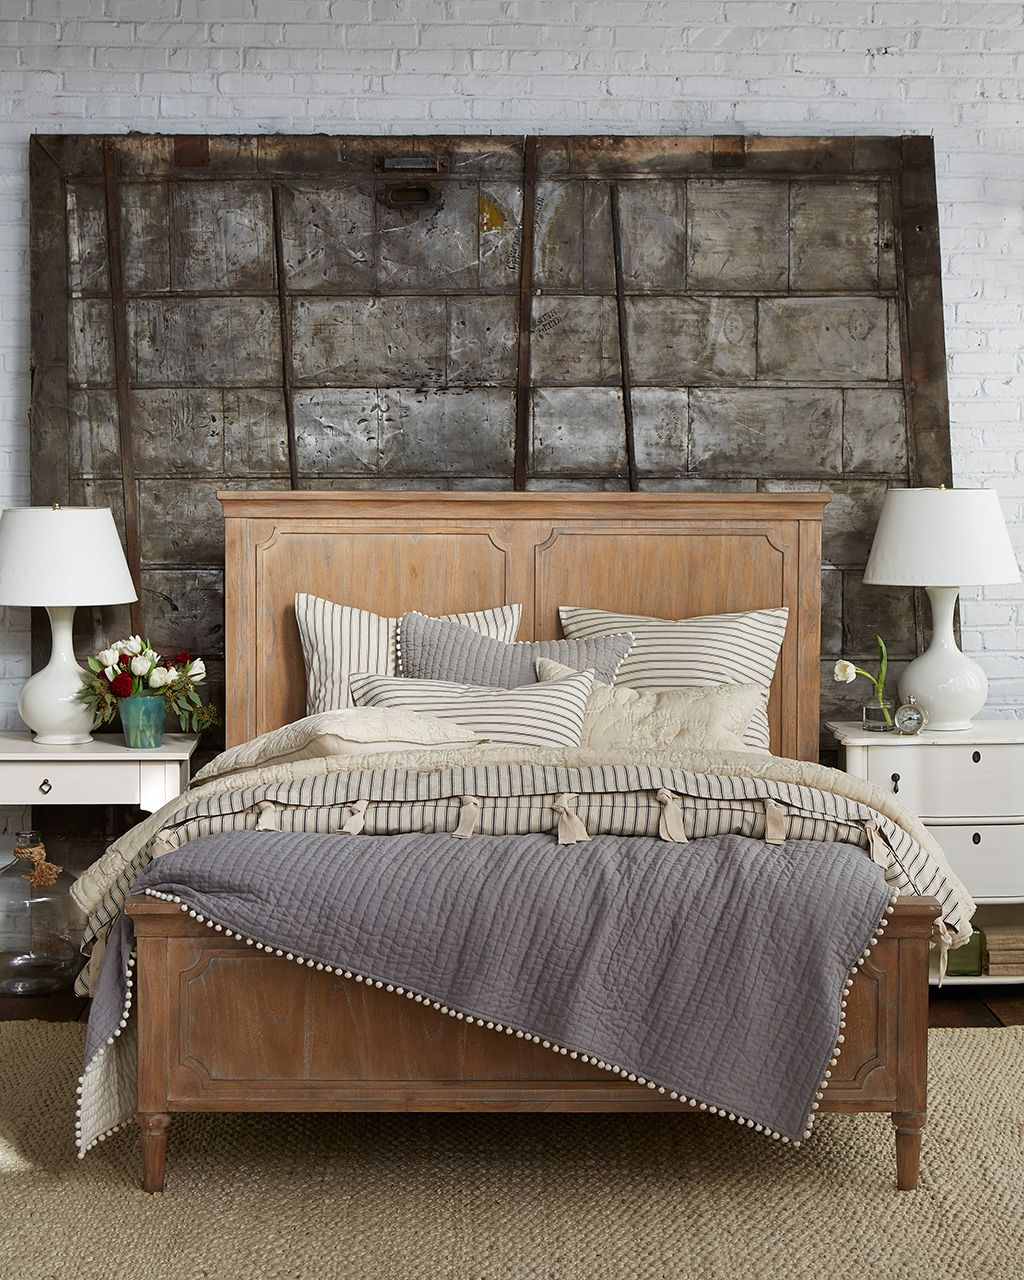 Loft style bedroom ideas  How to Mix and Match Patterned Bedding  Decorating Organization